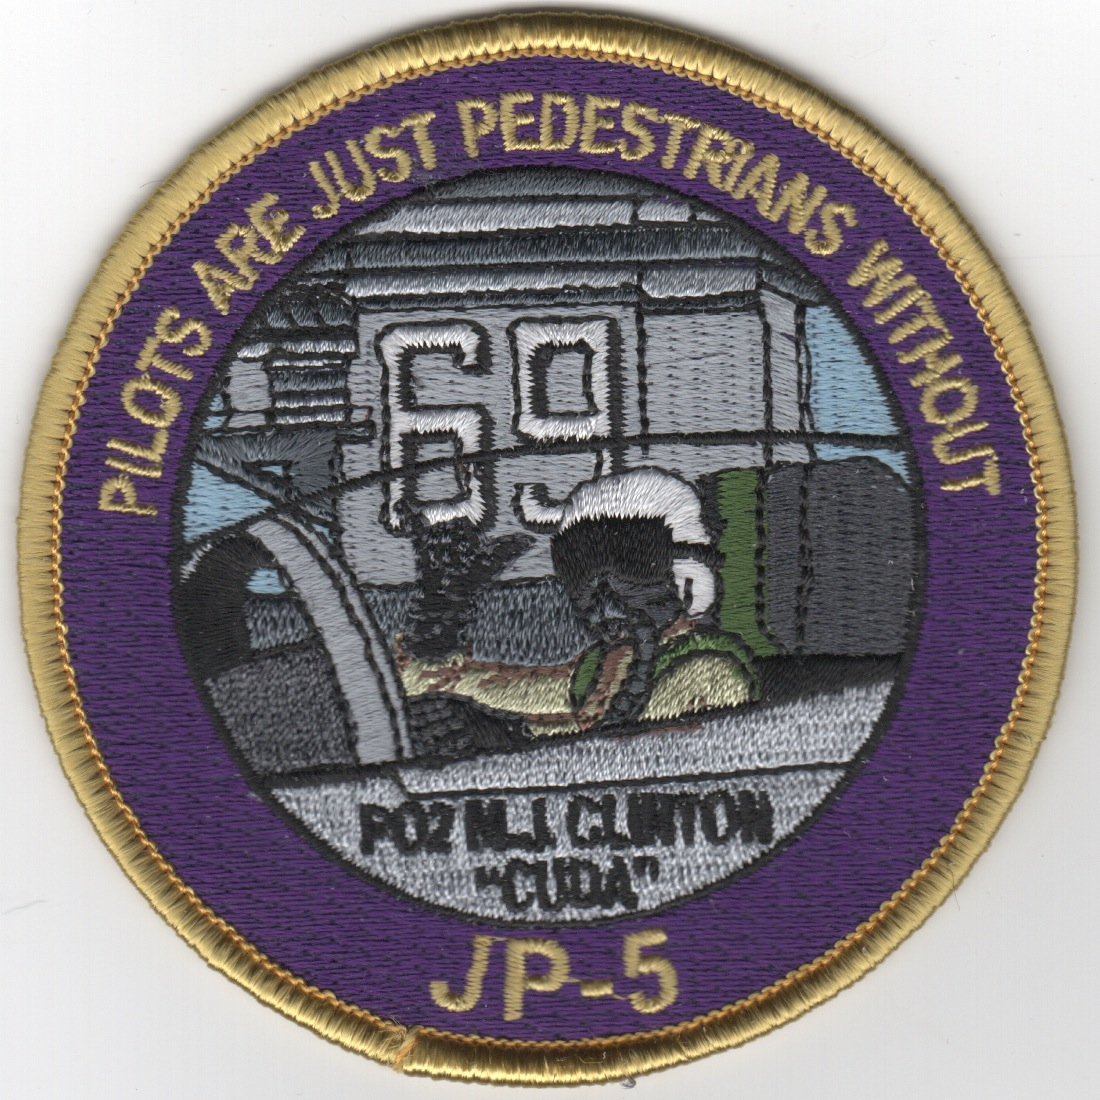 CVN-69 'Pilots are Just Pedestrians' Patch